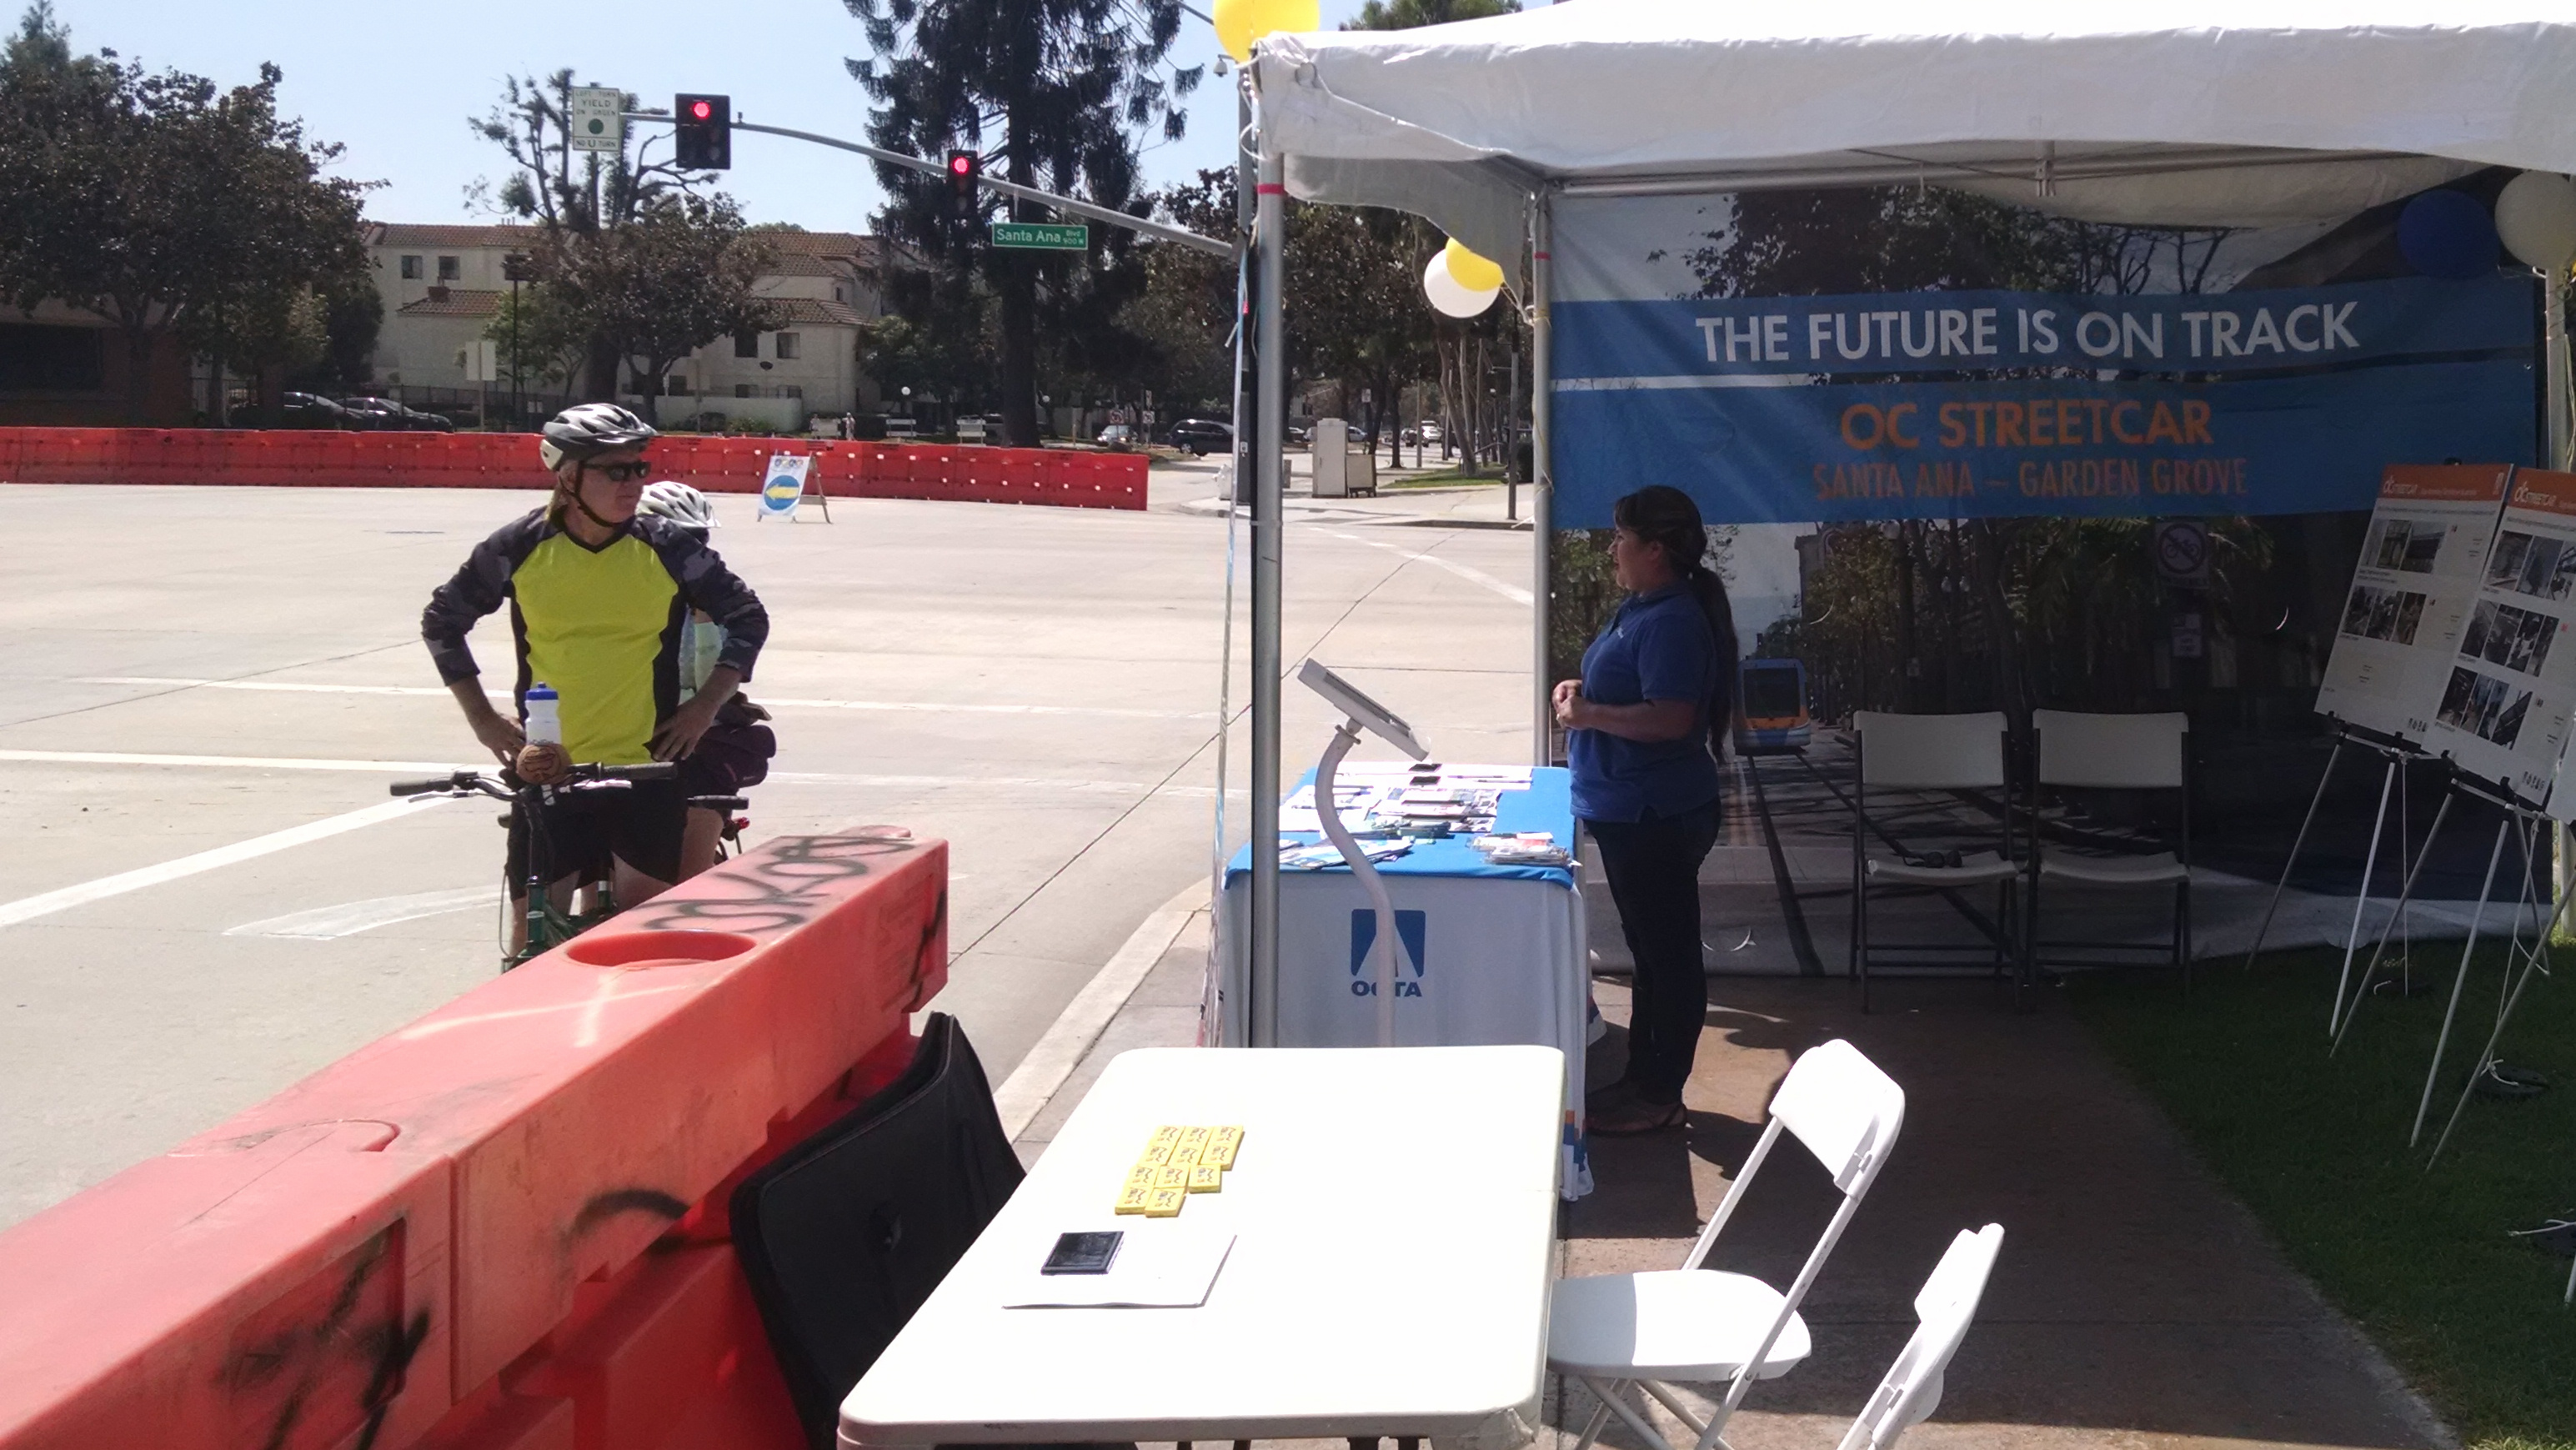 OCTA's OC Streetcar booth at Santa Ana's 5k/Ciclovia. Photo by Kristopher Fortin.